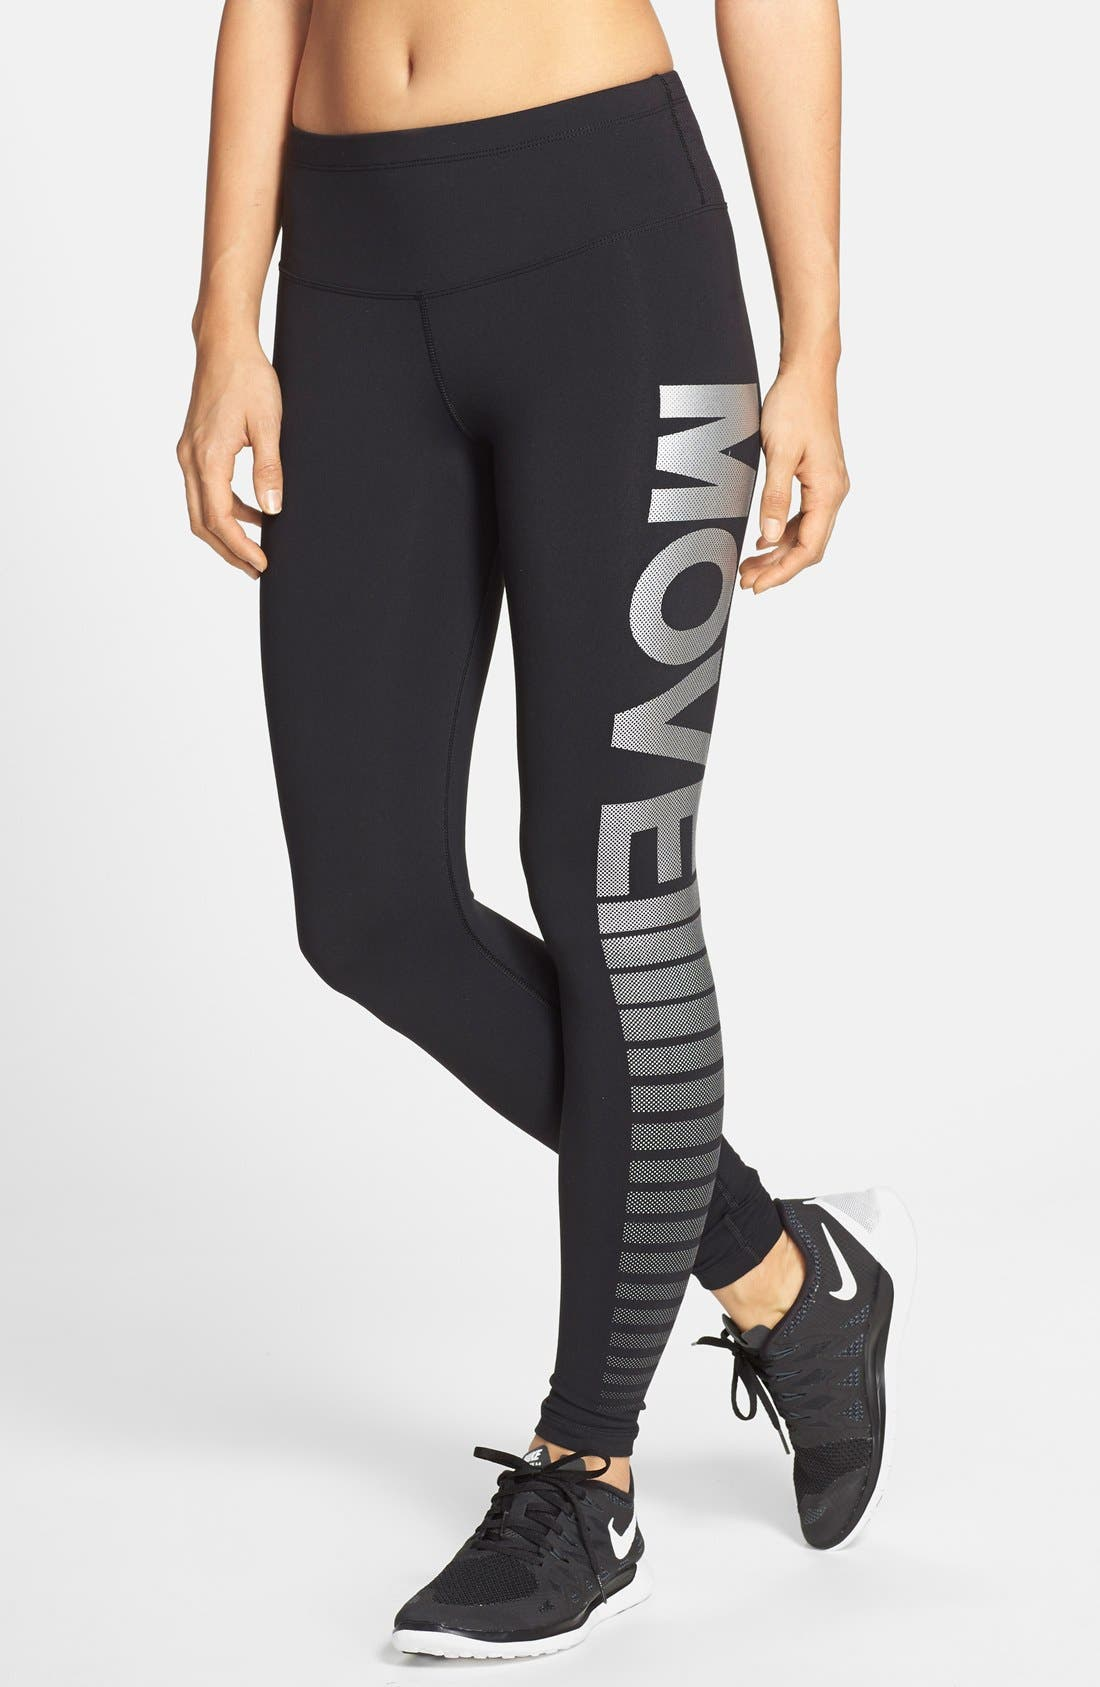 Alternate Image 1 Selected - Lorna Jane 'Move' Full Length Running Tights